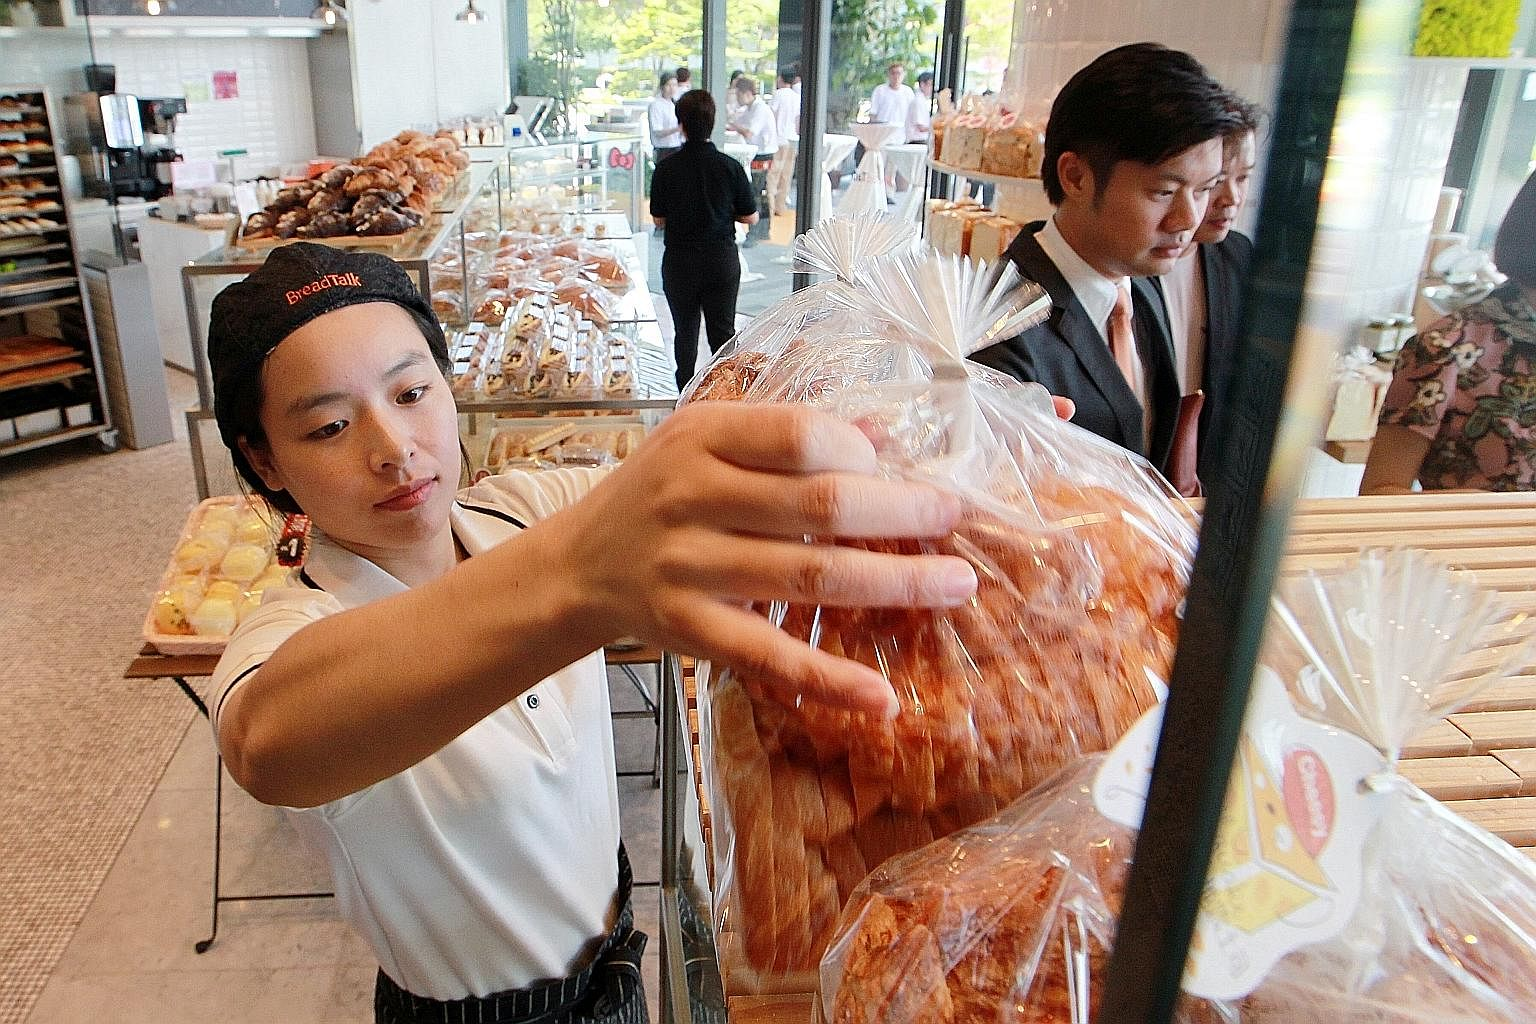 BreadTalk staff ensure confections are properly covered on shelves or kept in their packaging.